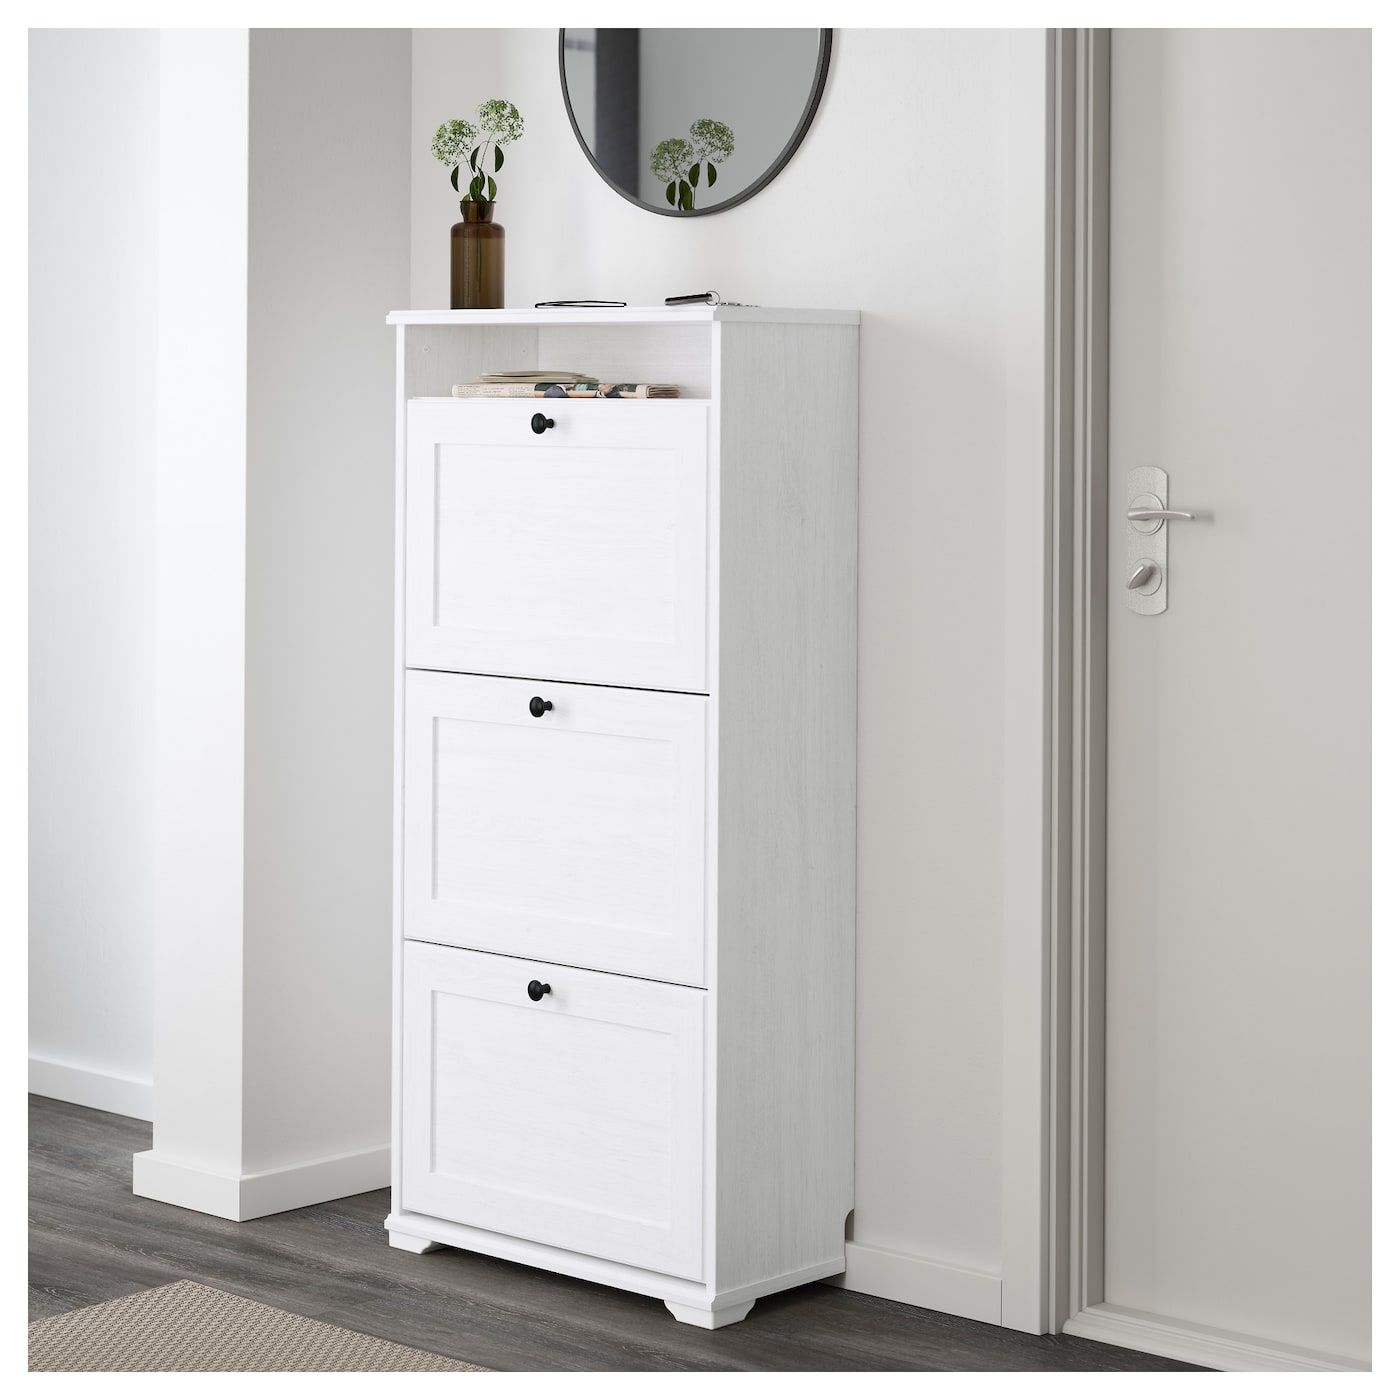 Ikea Us Furniture And Home Furnishings Ikea Brusali Ikea Shoe Cabinet Shoe Cabinet